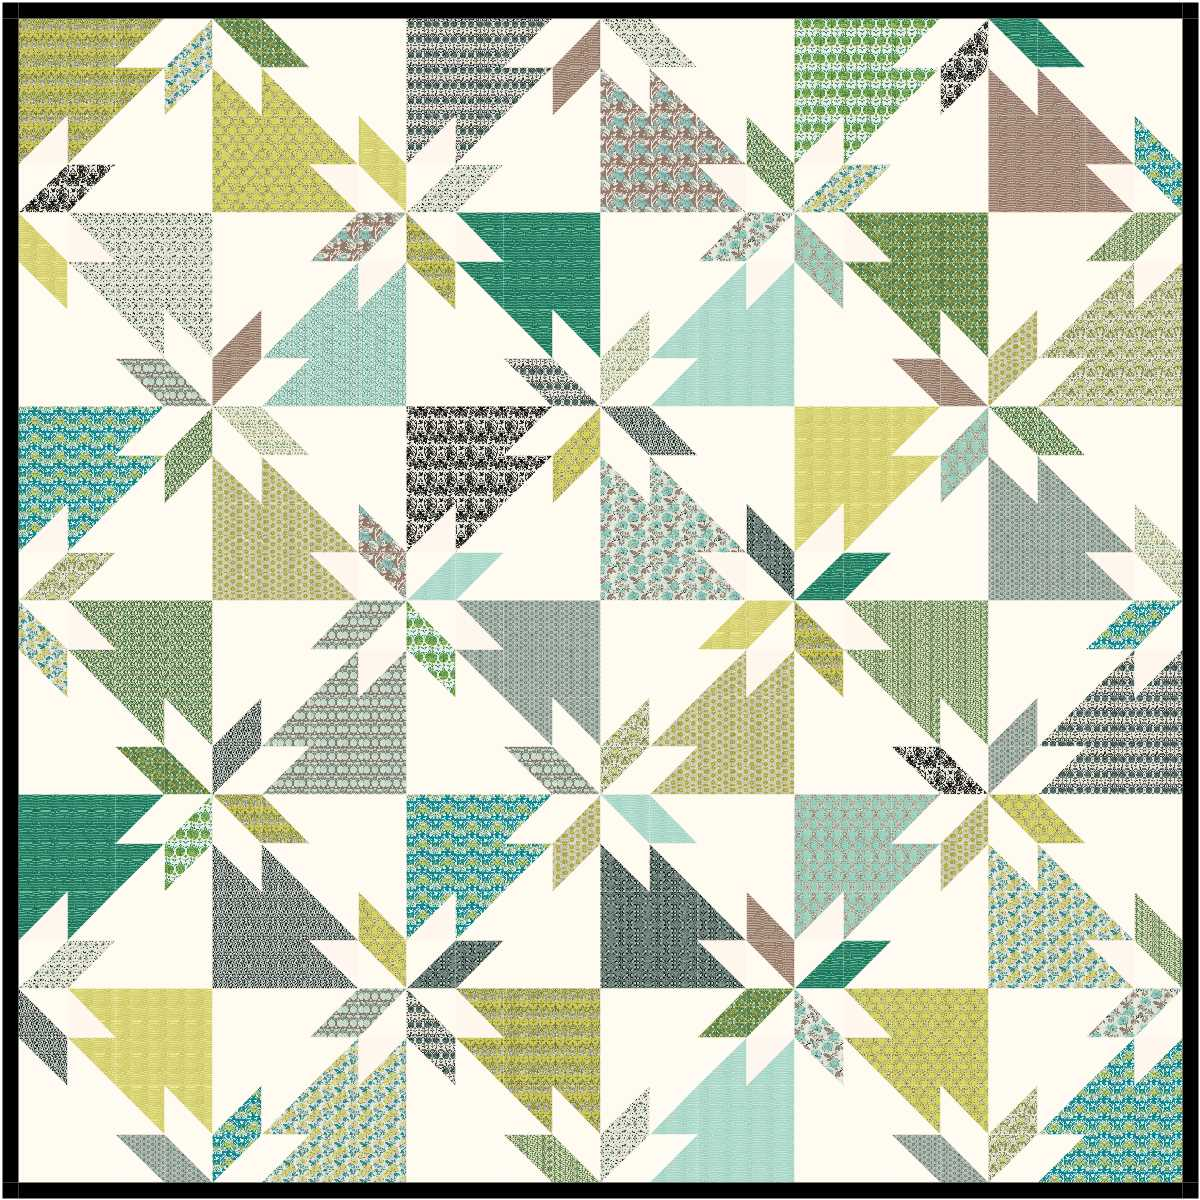 The Bees Knees A Quilting Bee June Block Hunters Star